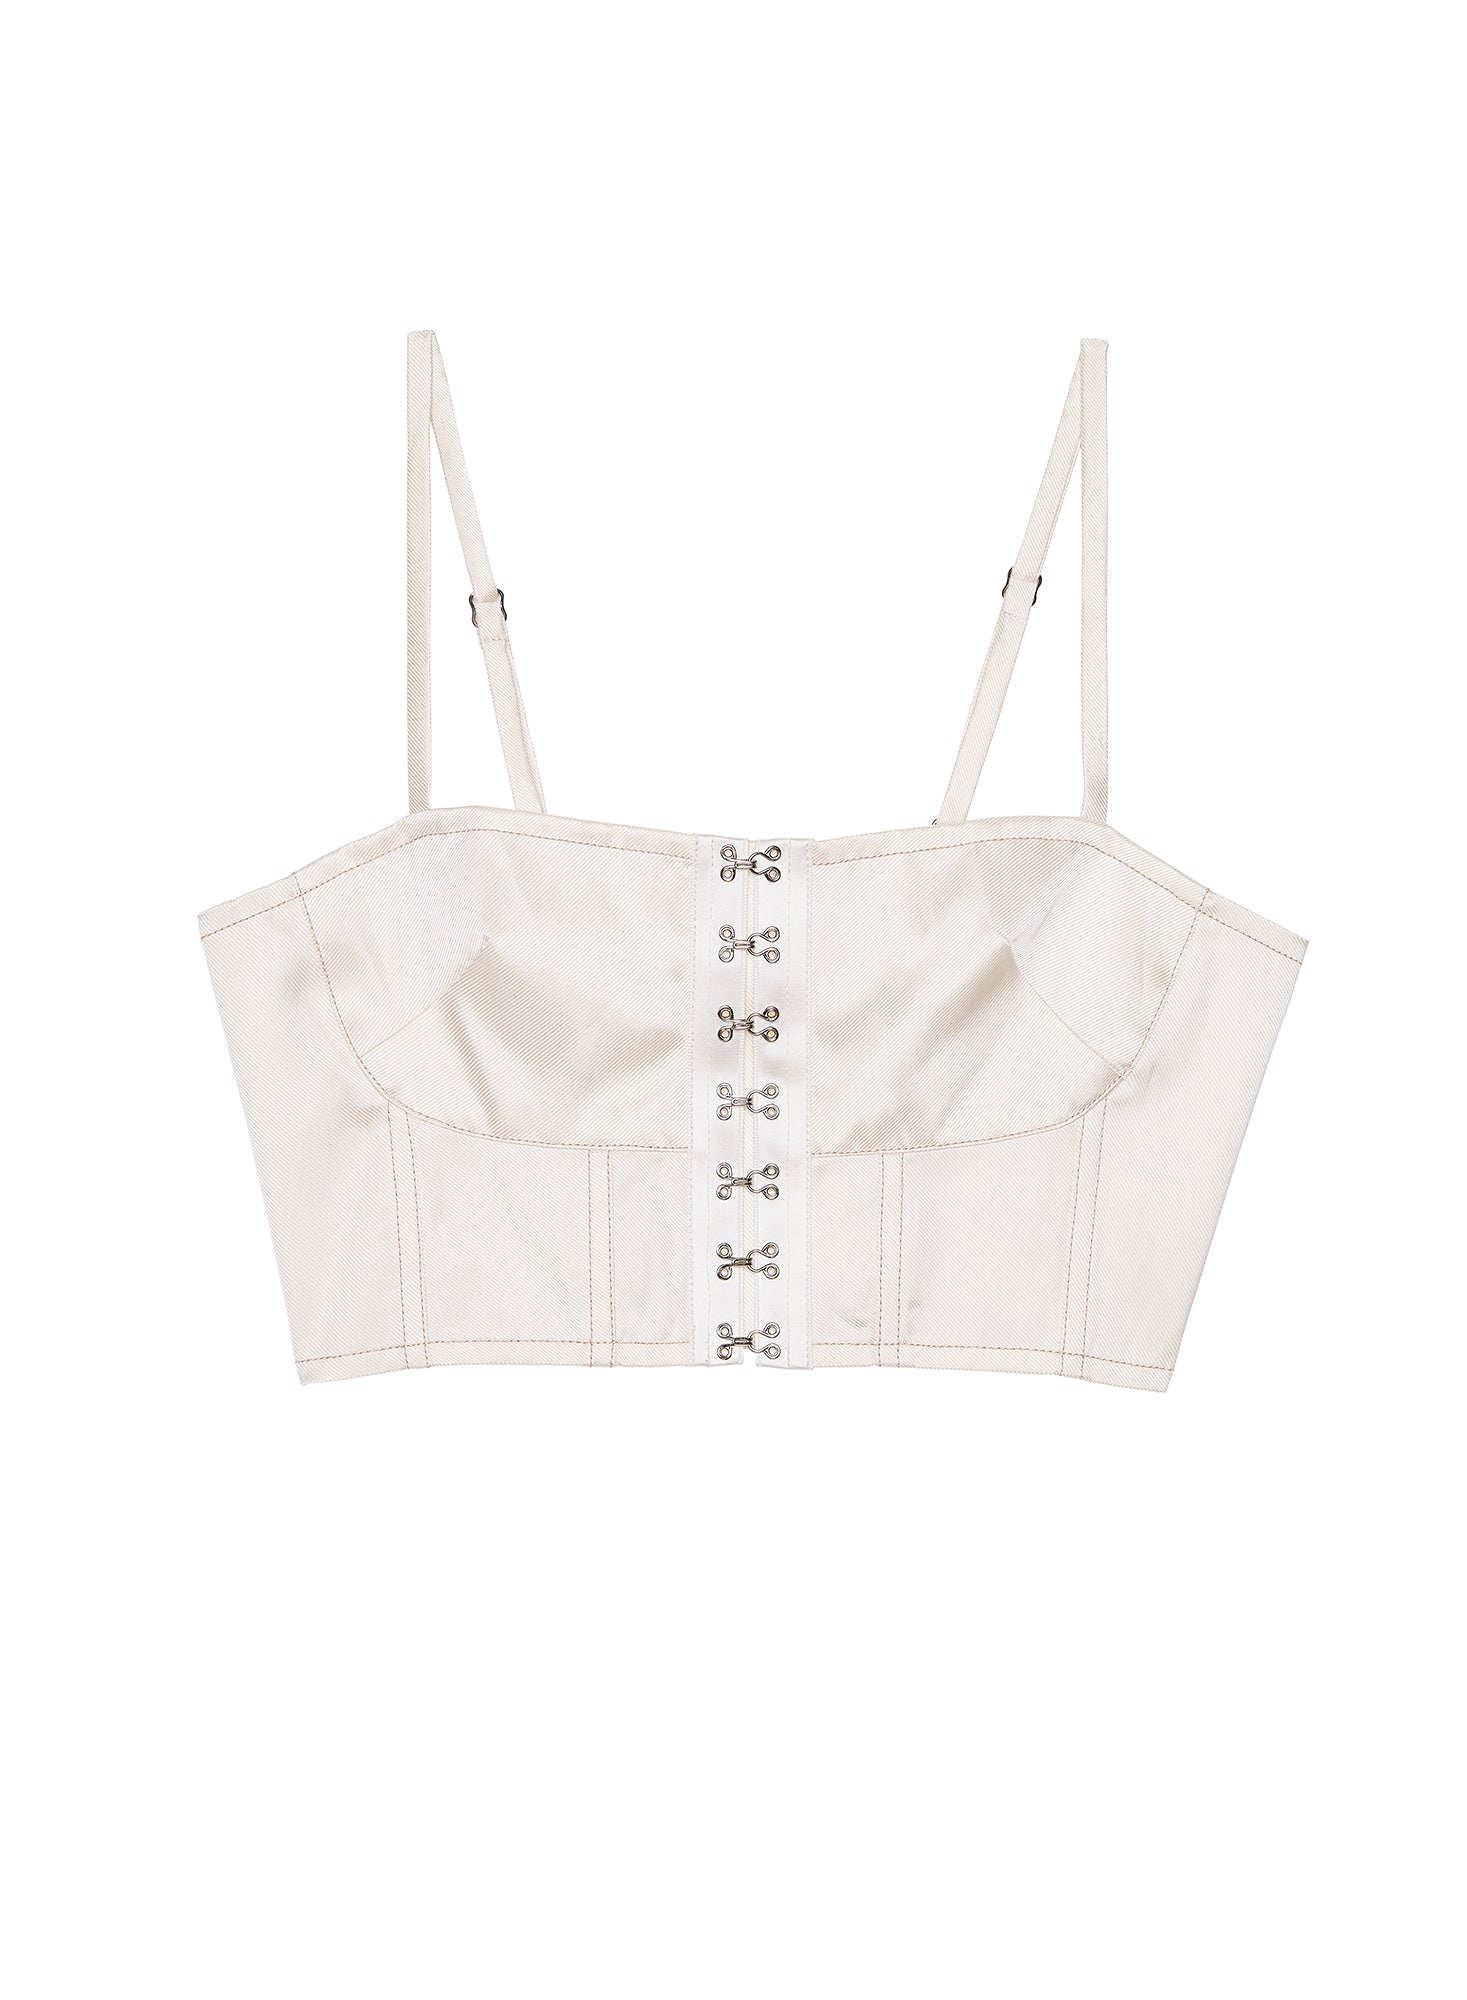 Hook & Eye Bustier Top